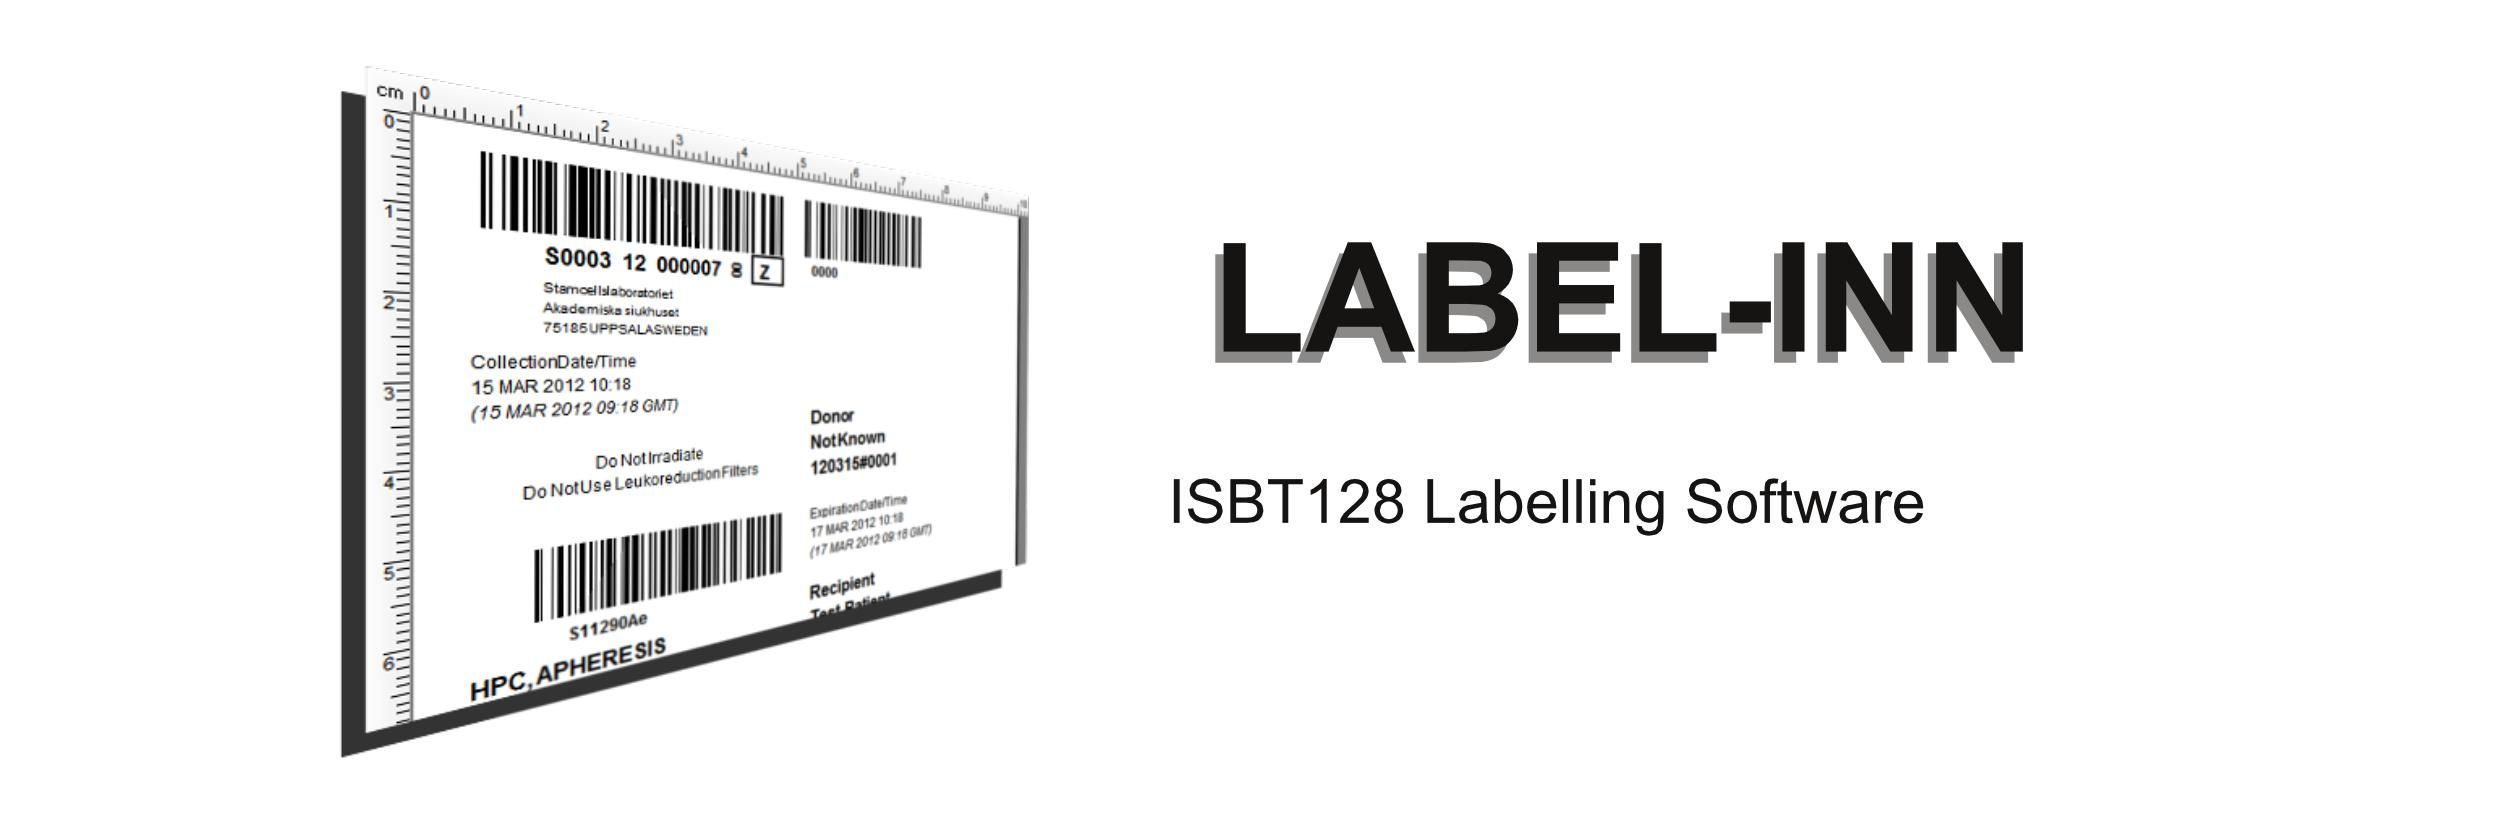 LABEL-INN